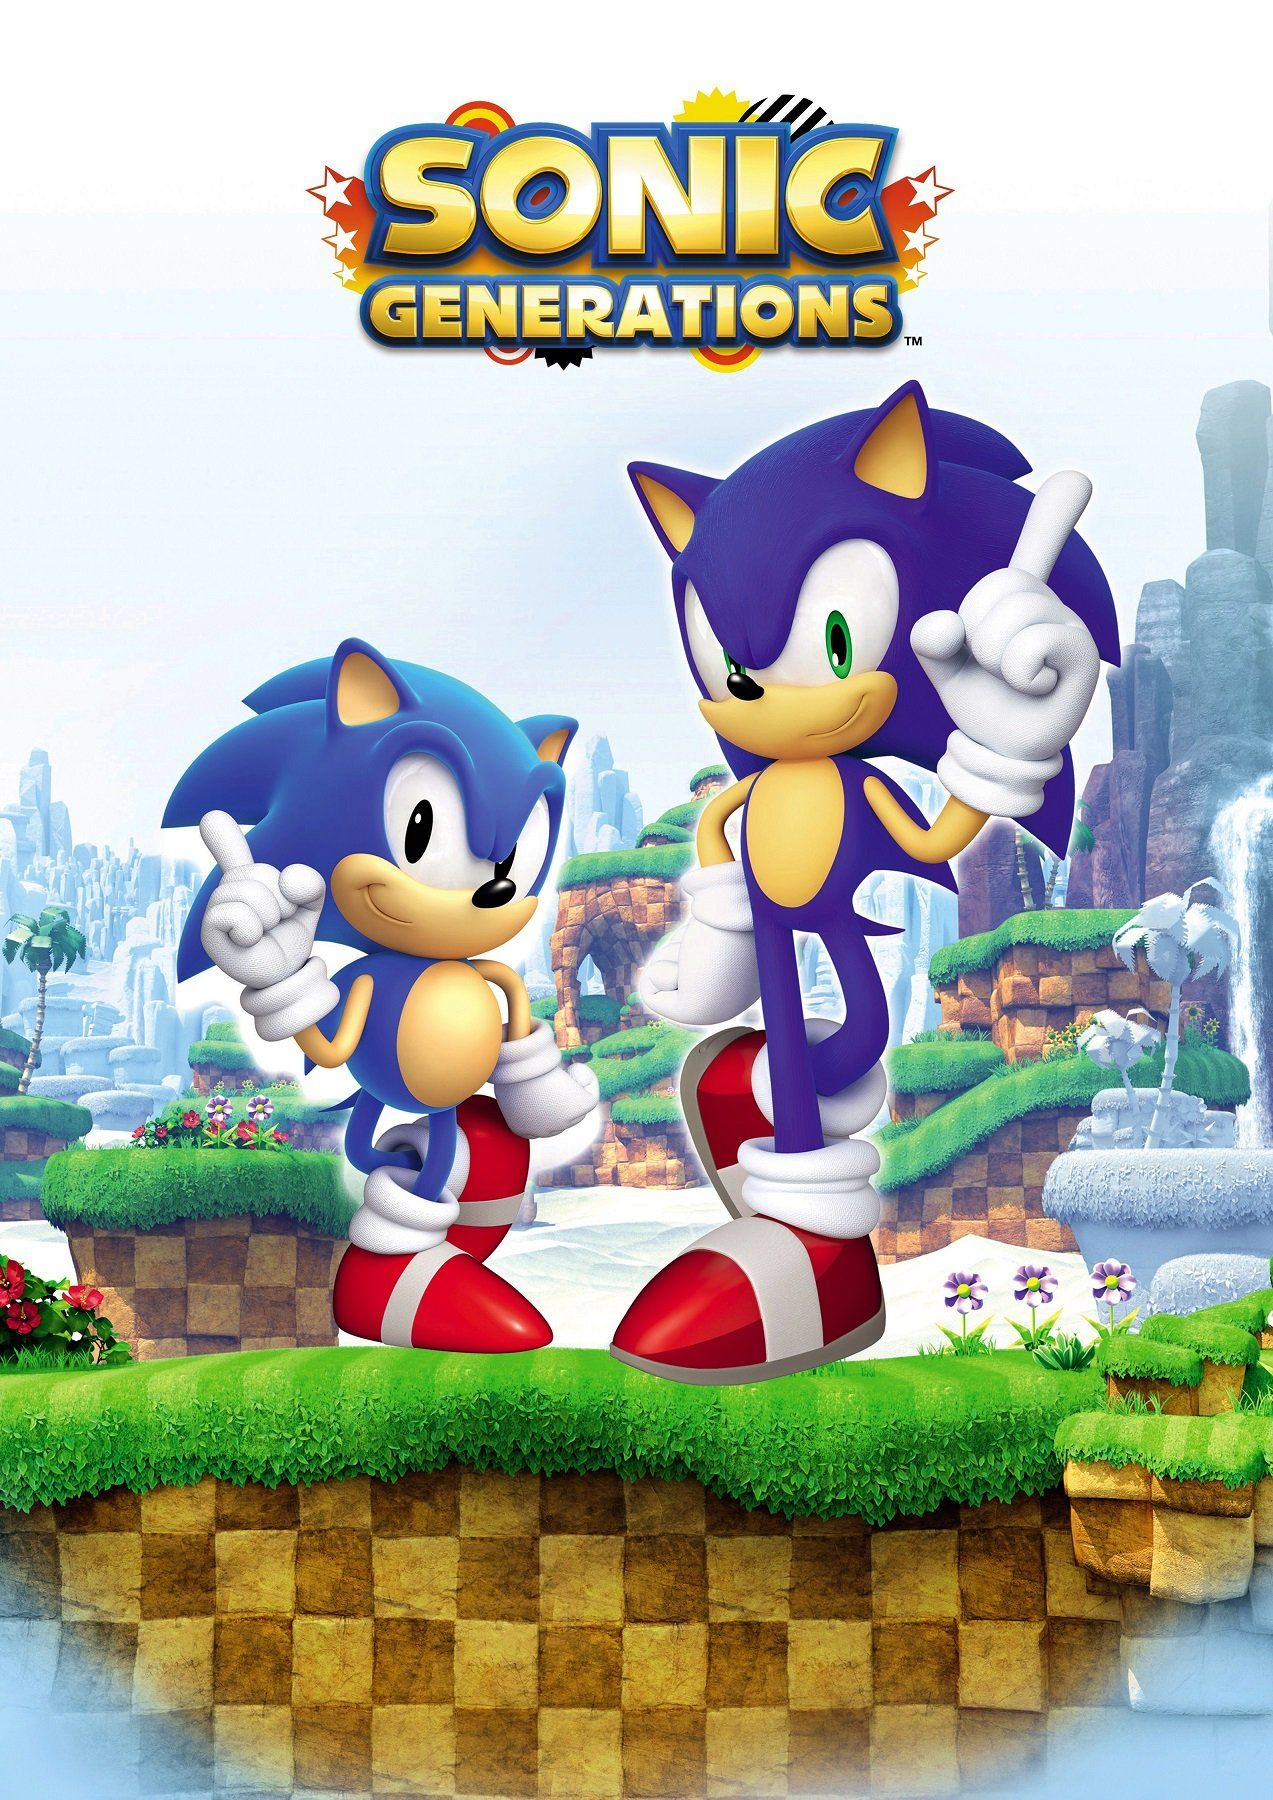 Sonic Generations Poster (With images) Sonic generations